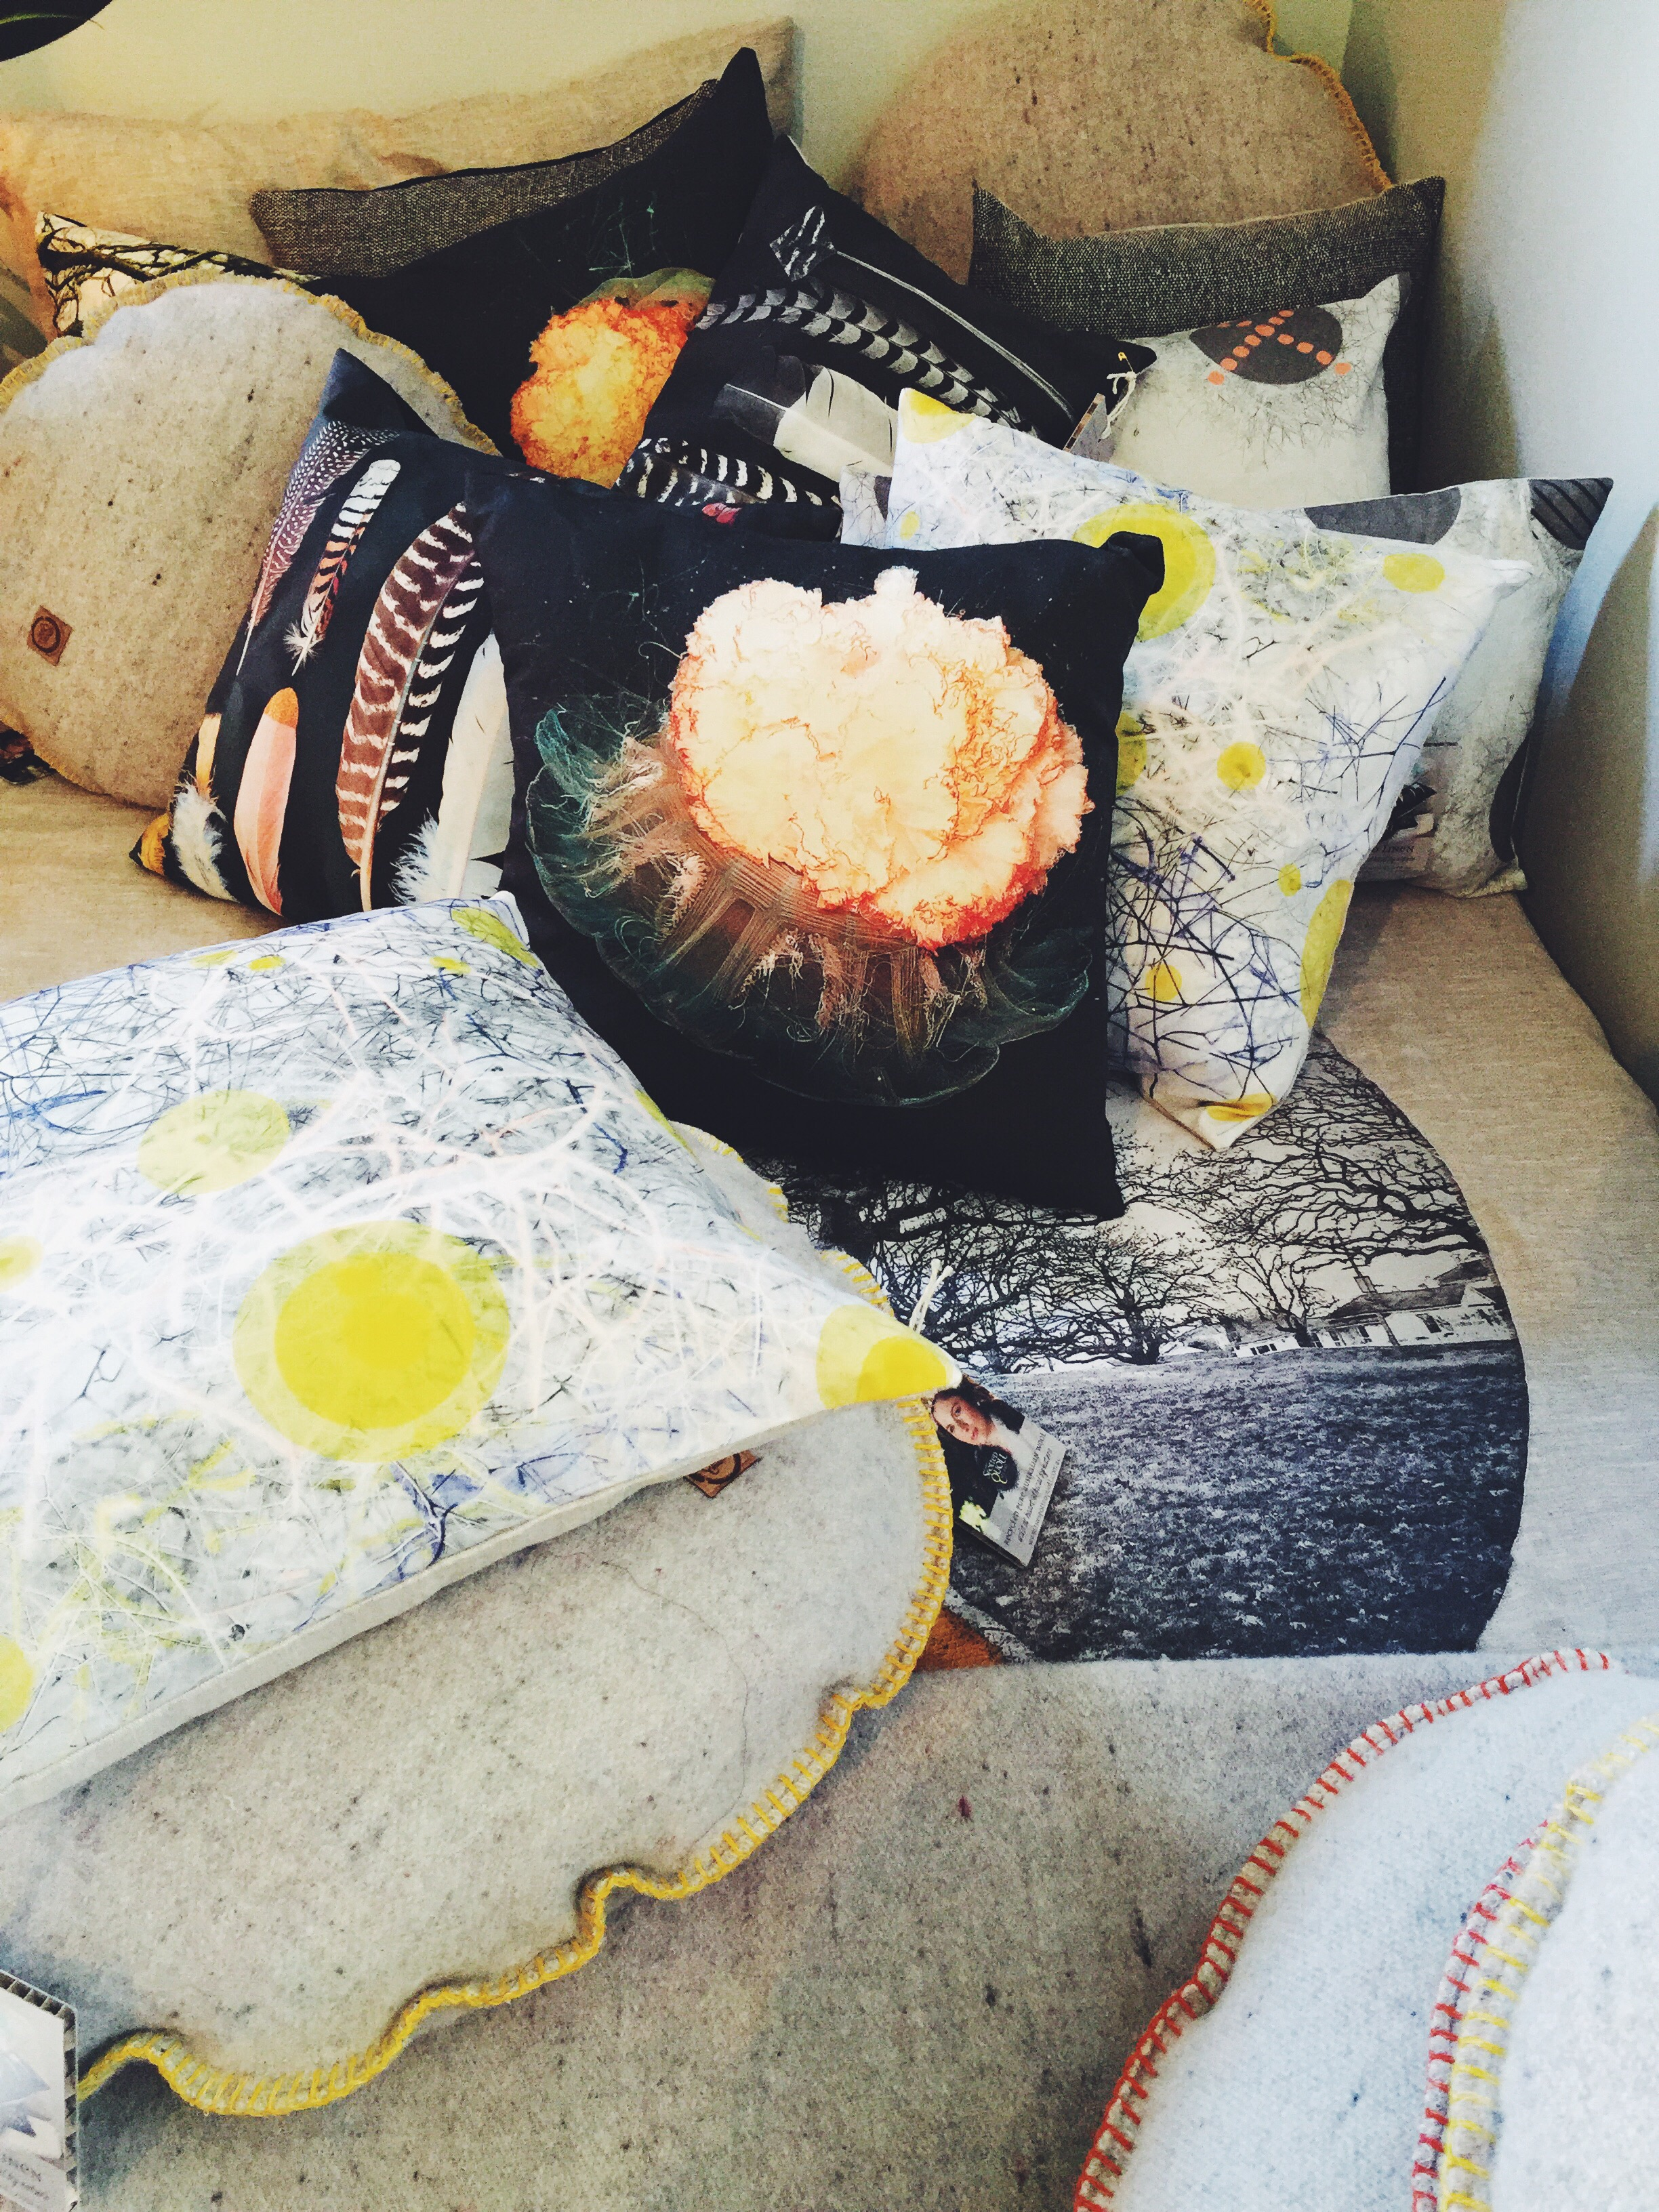 Amongst other gorgeous pillows and throws is the jellyfish design